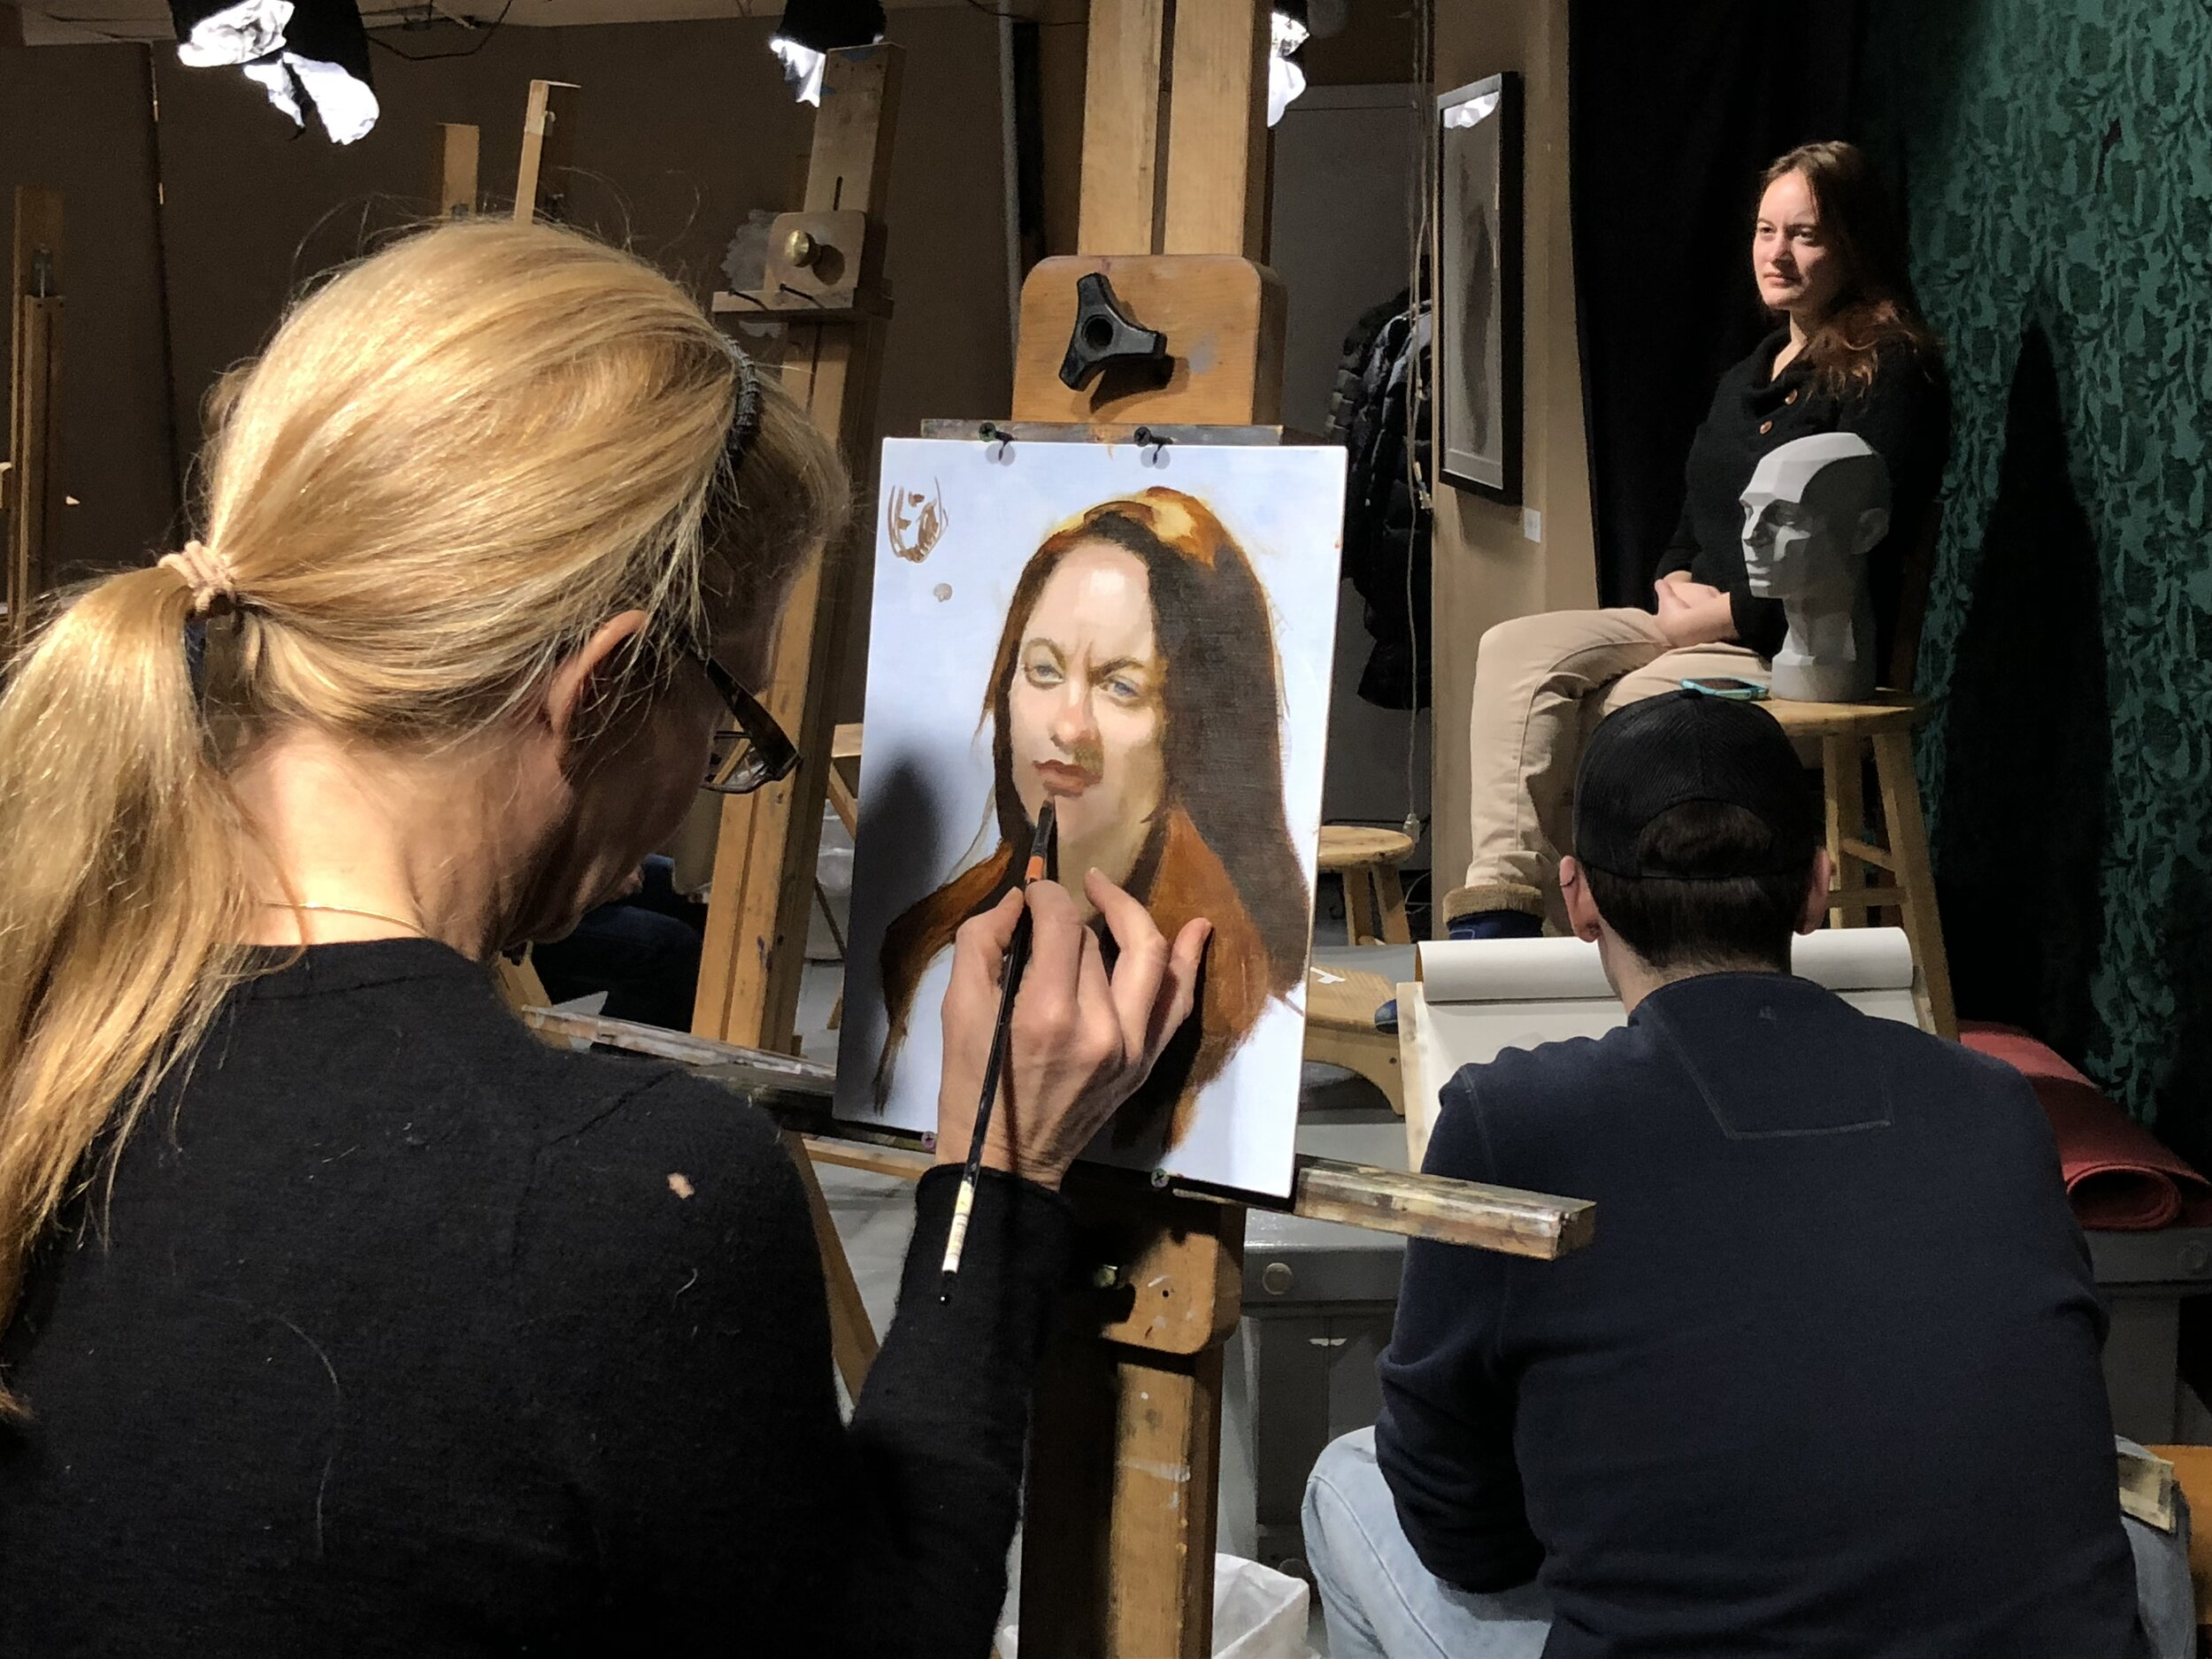 After Foundations, working from the live model is a crucial skill that figurative artists need to master.